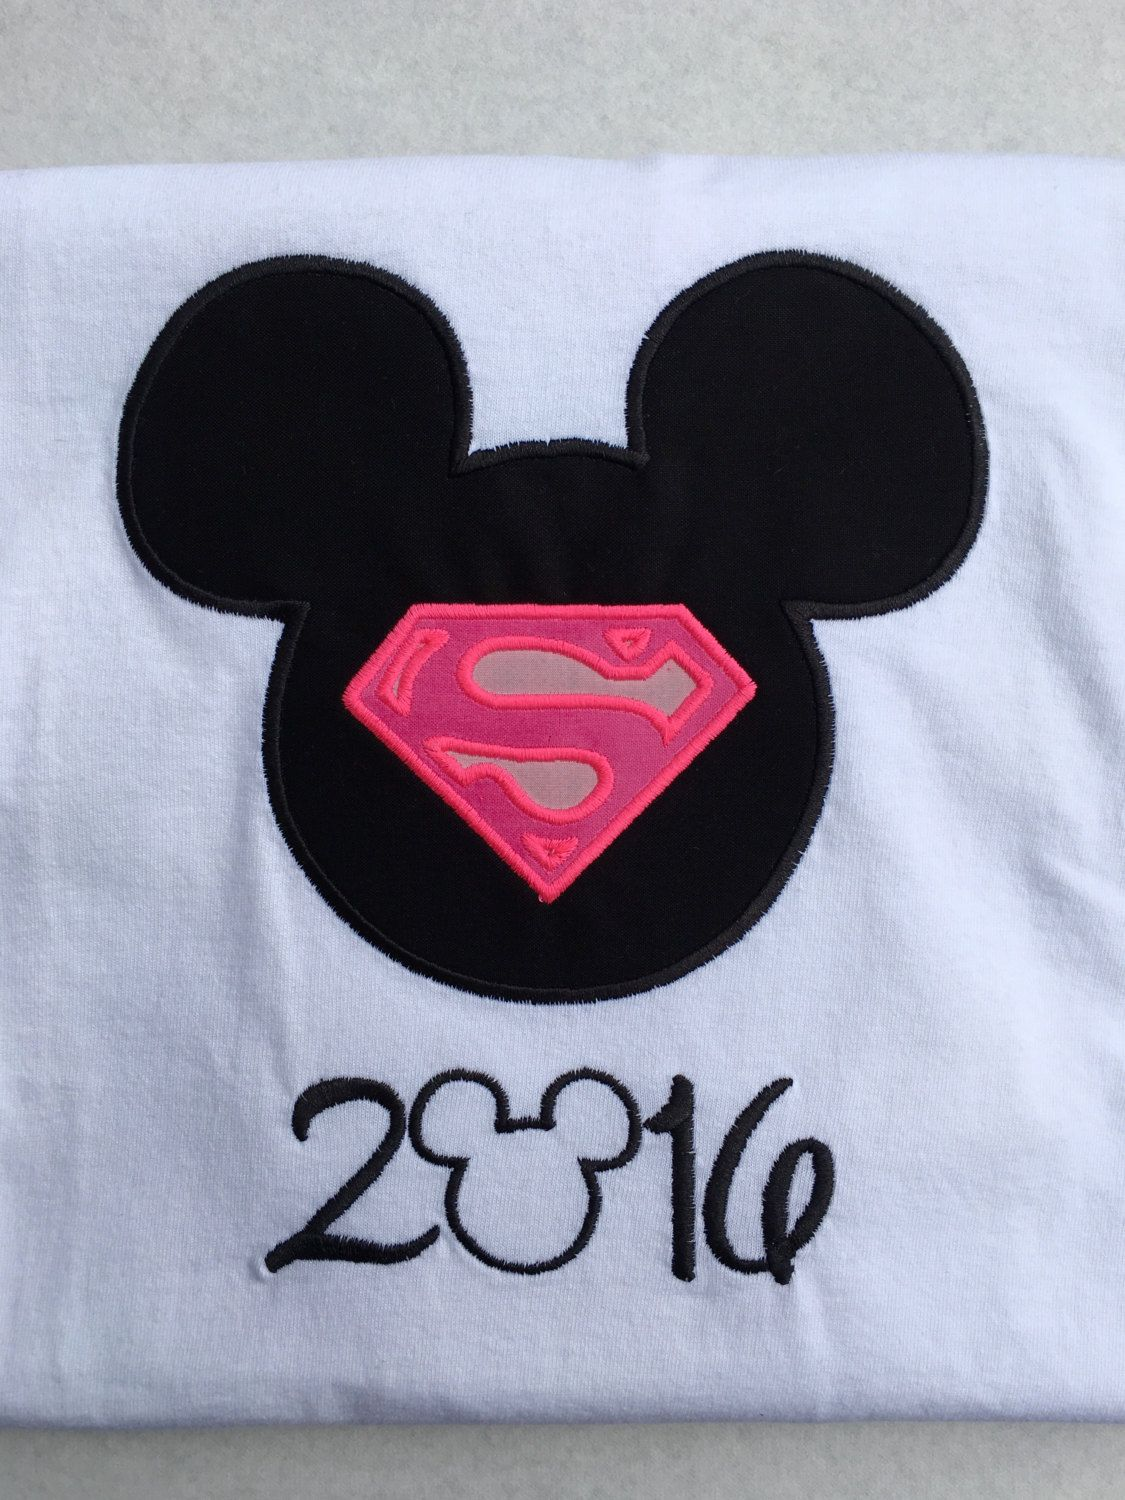 DISNEY SUPER HERO Supergirl-Personalized Embroidered Bodysuit or T-Shirt-Adult or Kids by BerryBlondeRibbon on Etsy